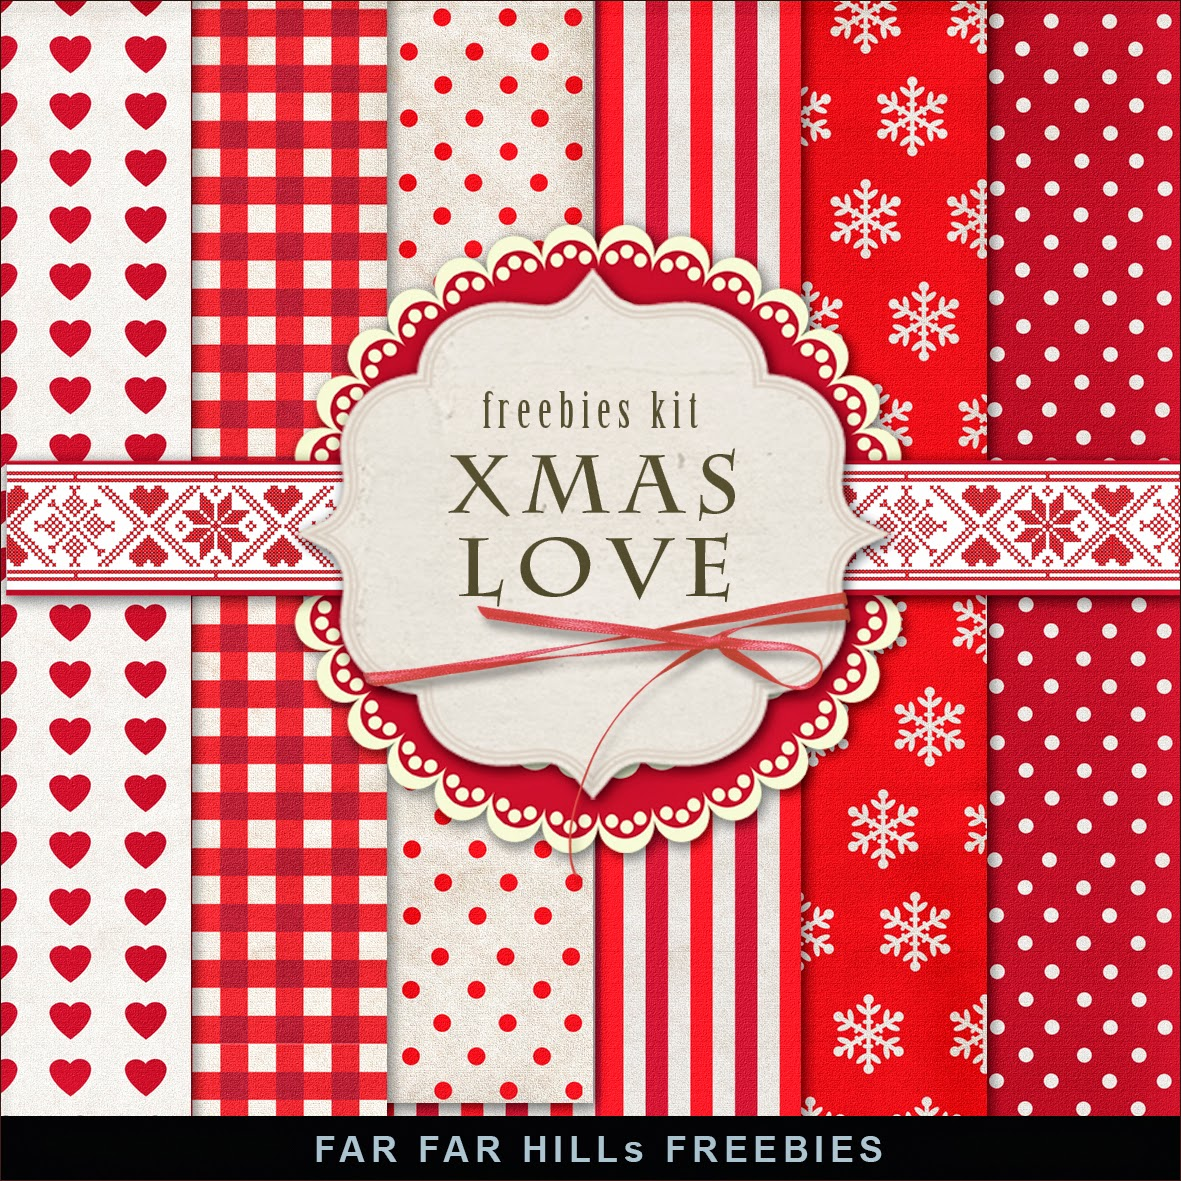 Freebies Kit of Winter Backgrounds - Xmas Love